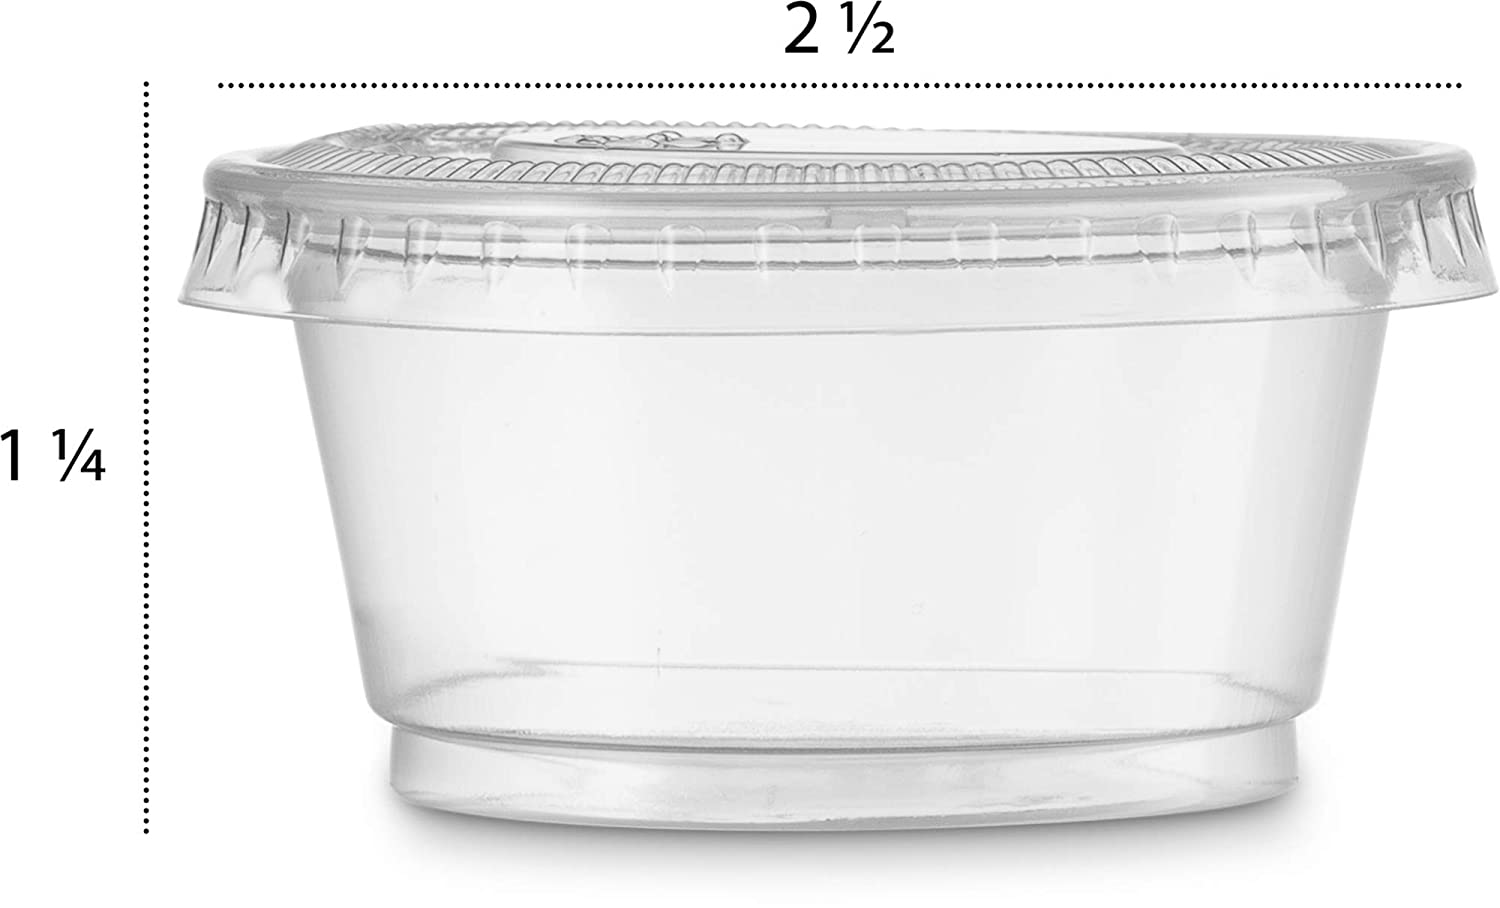 Tight fit Easy Snap-on Lids Clear /& Fully Transparent Durable 2 oz Premium Quality Disposable Plastic Shot Cups Sets 100 Sets Portion Souffle Cups with Lids - Leak-Resistant